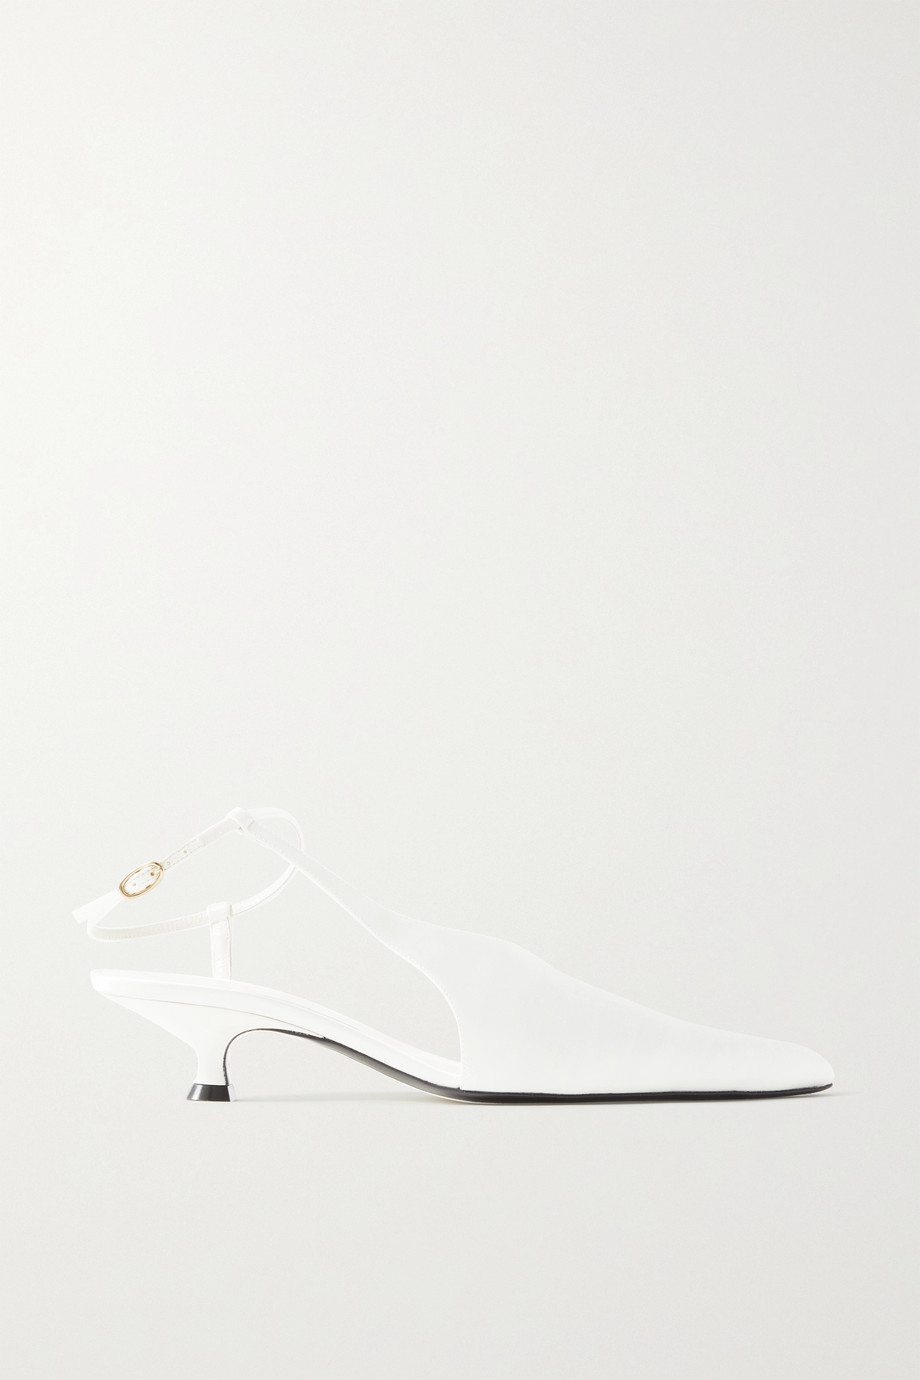 KHAITE Seville satin pumps